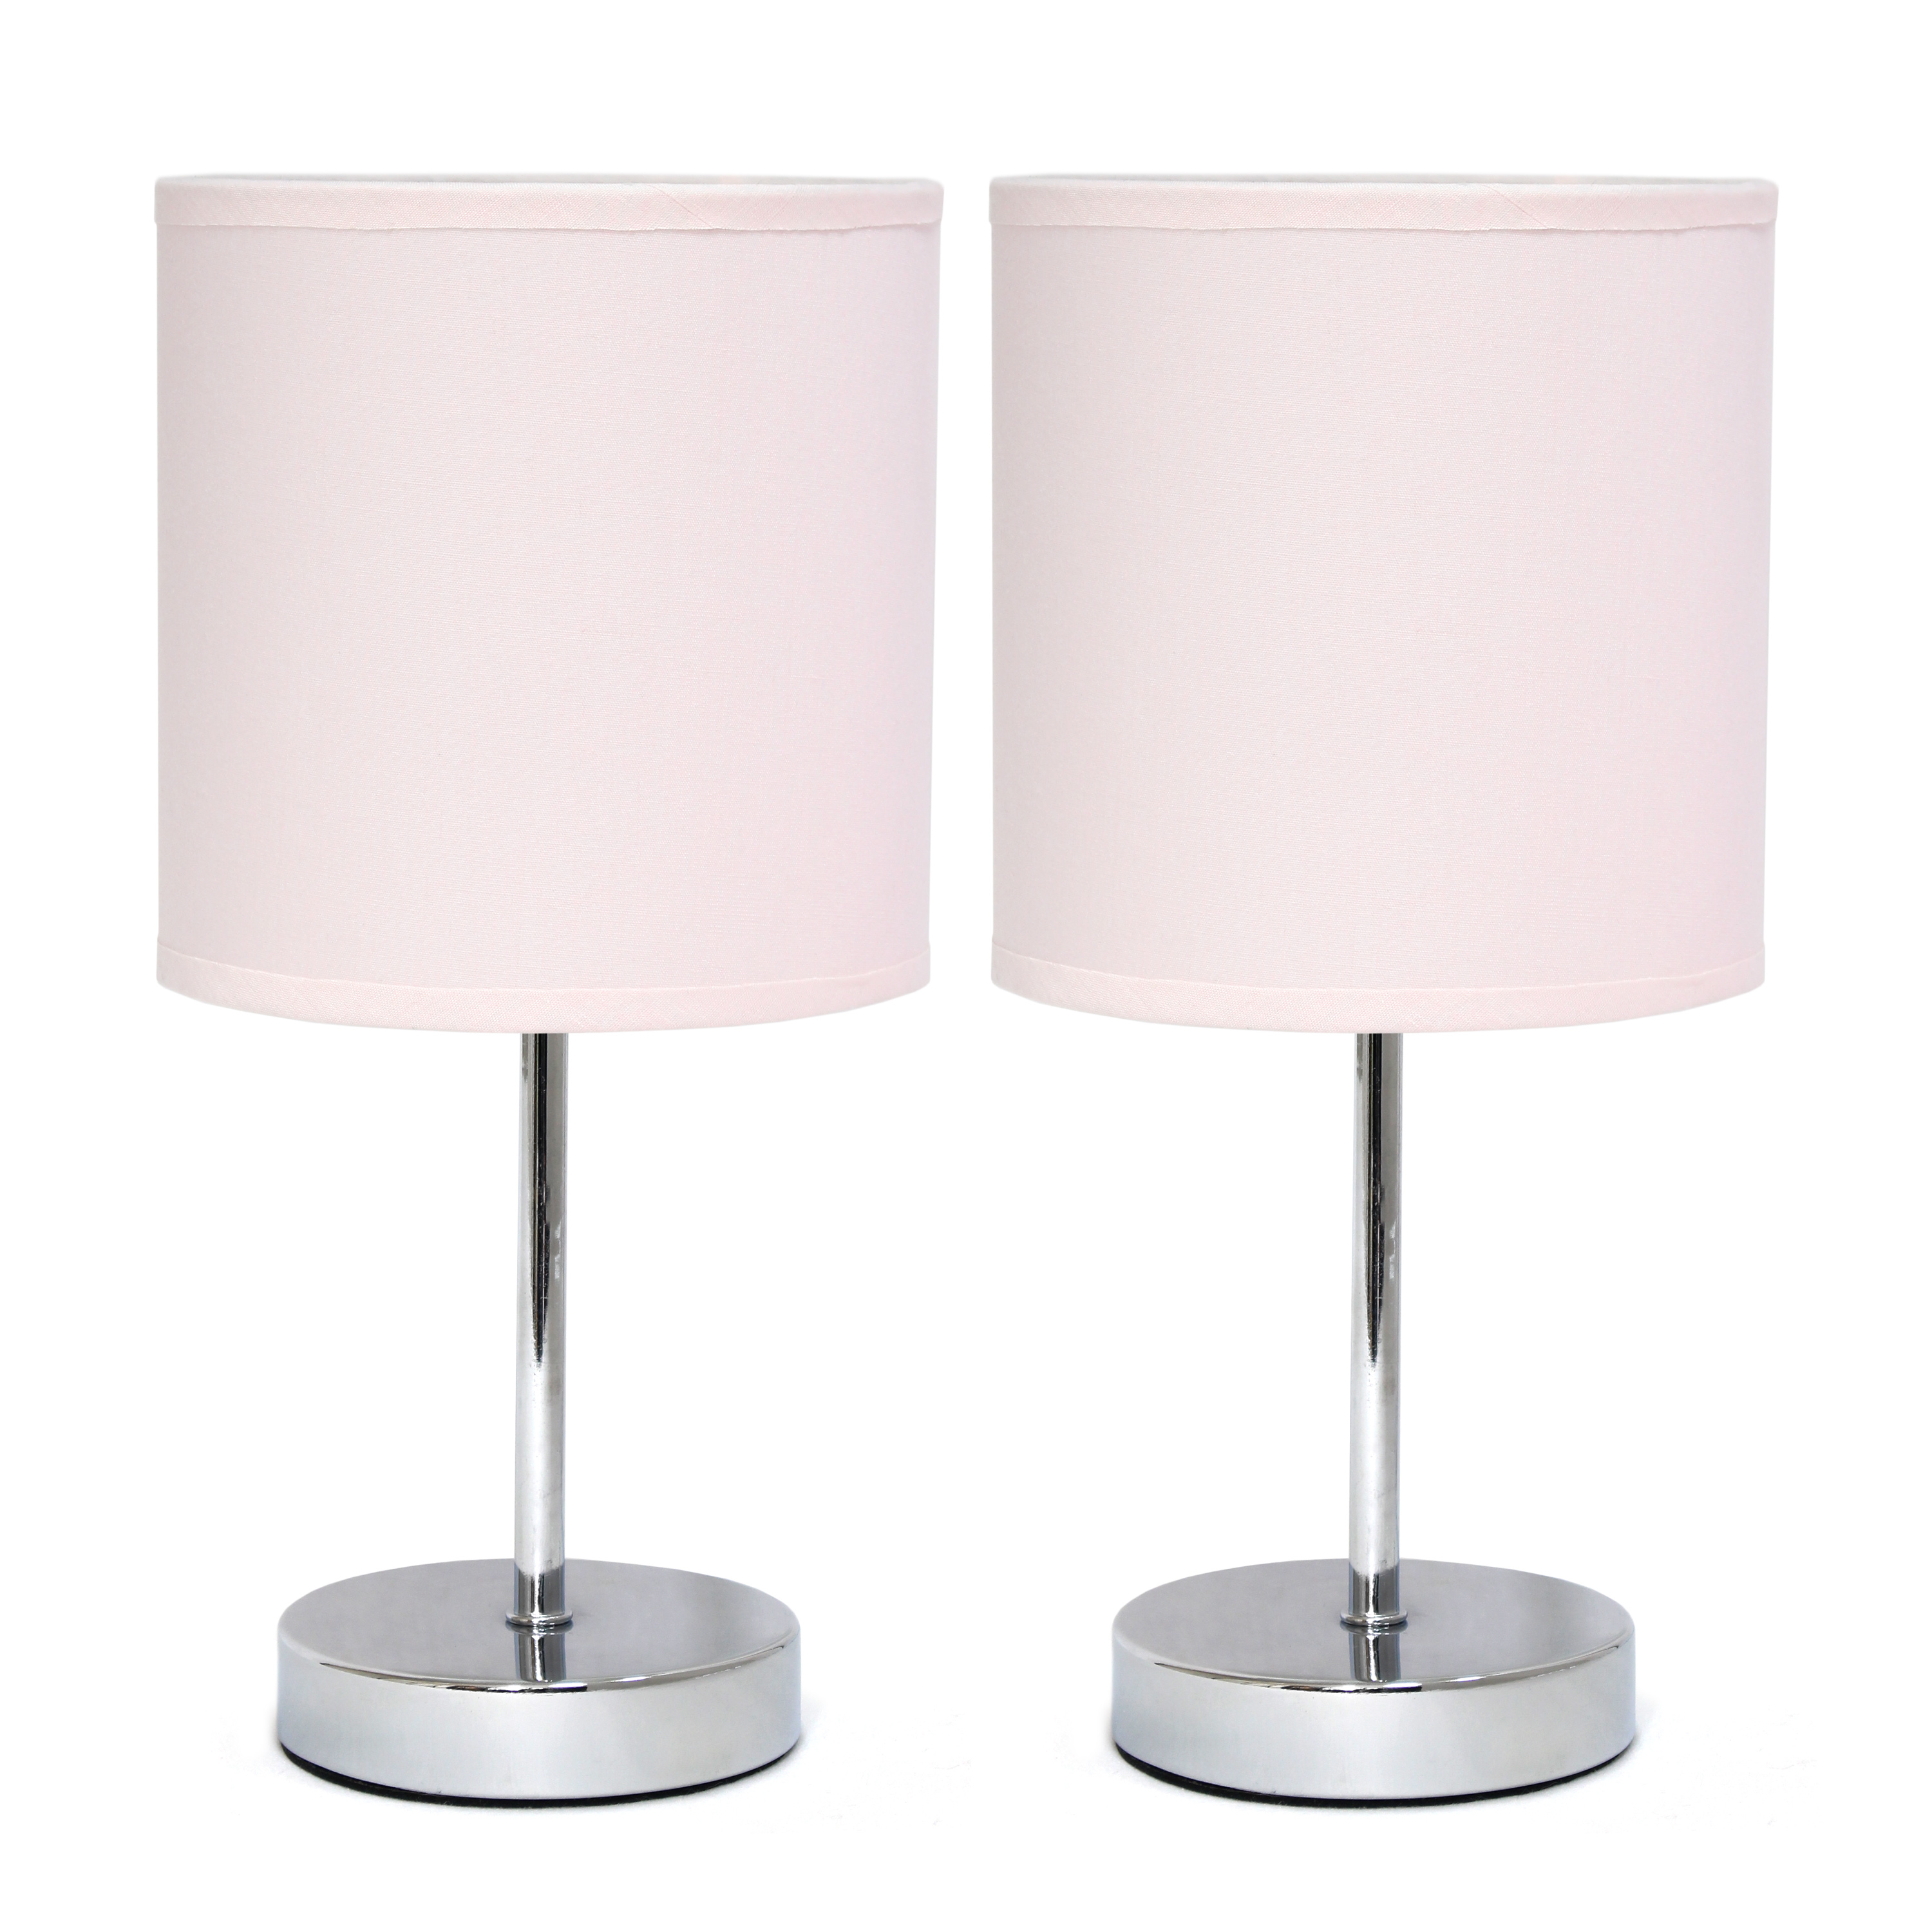 Simple Designs Chrome Mini Basic Table Lamp with Fabric Shade 2 Pack Set, Blush Pink